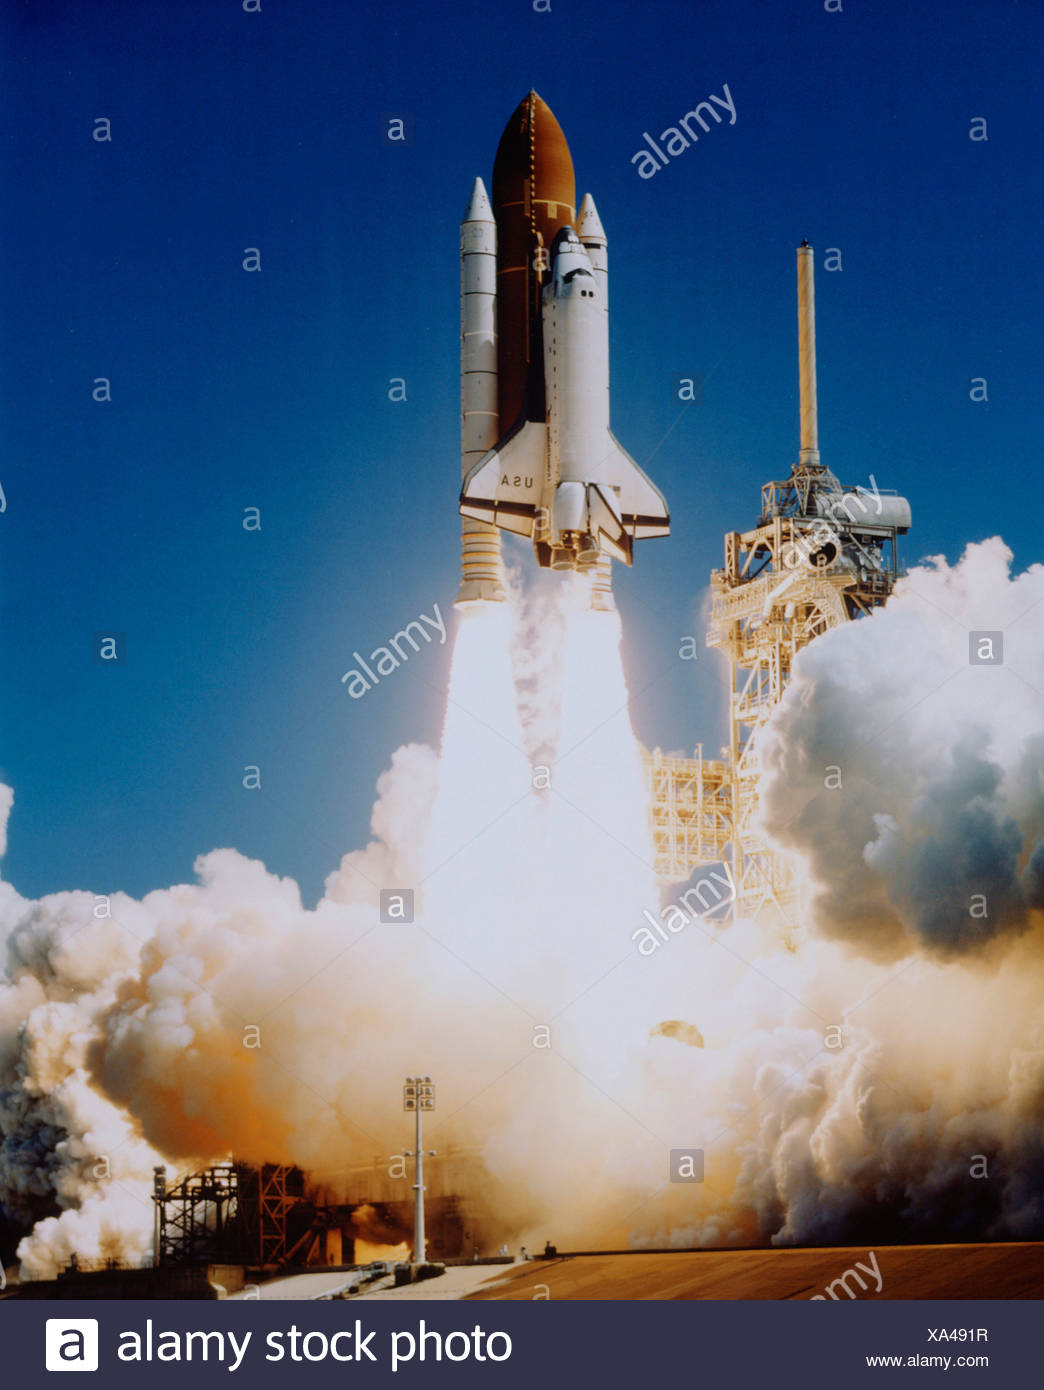 usa space shuttle columbia - photo #2